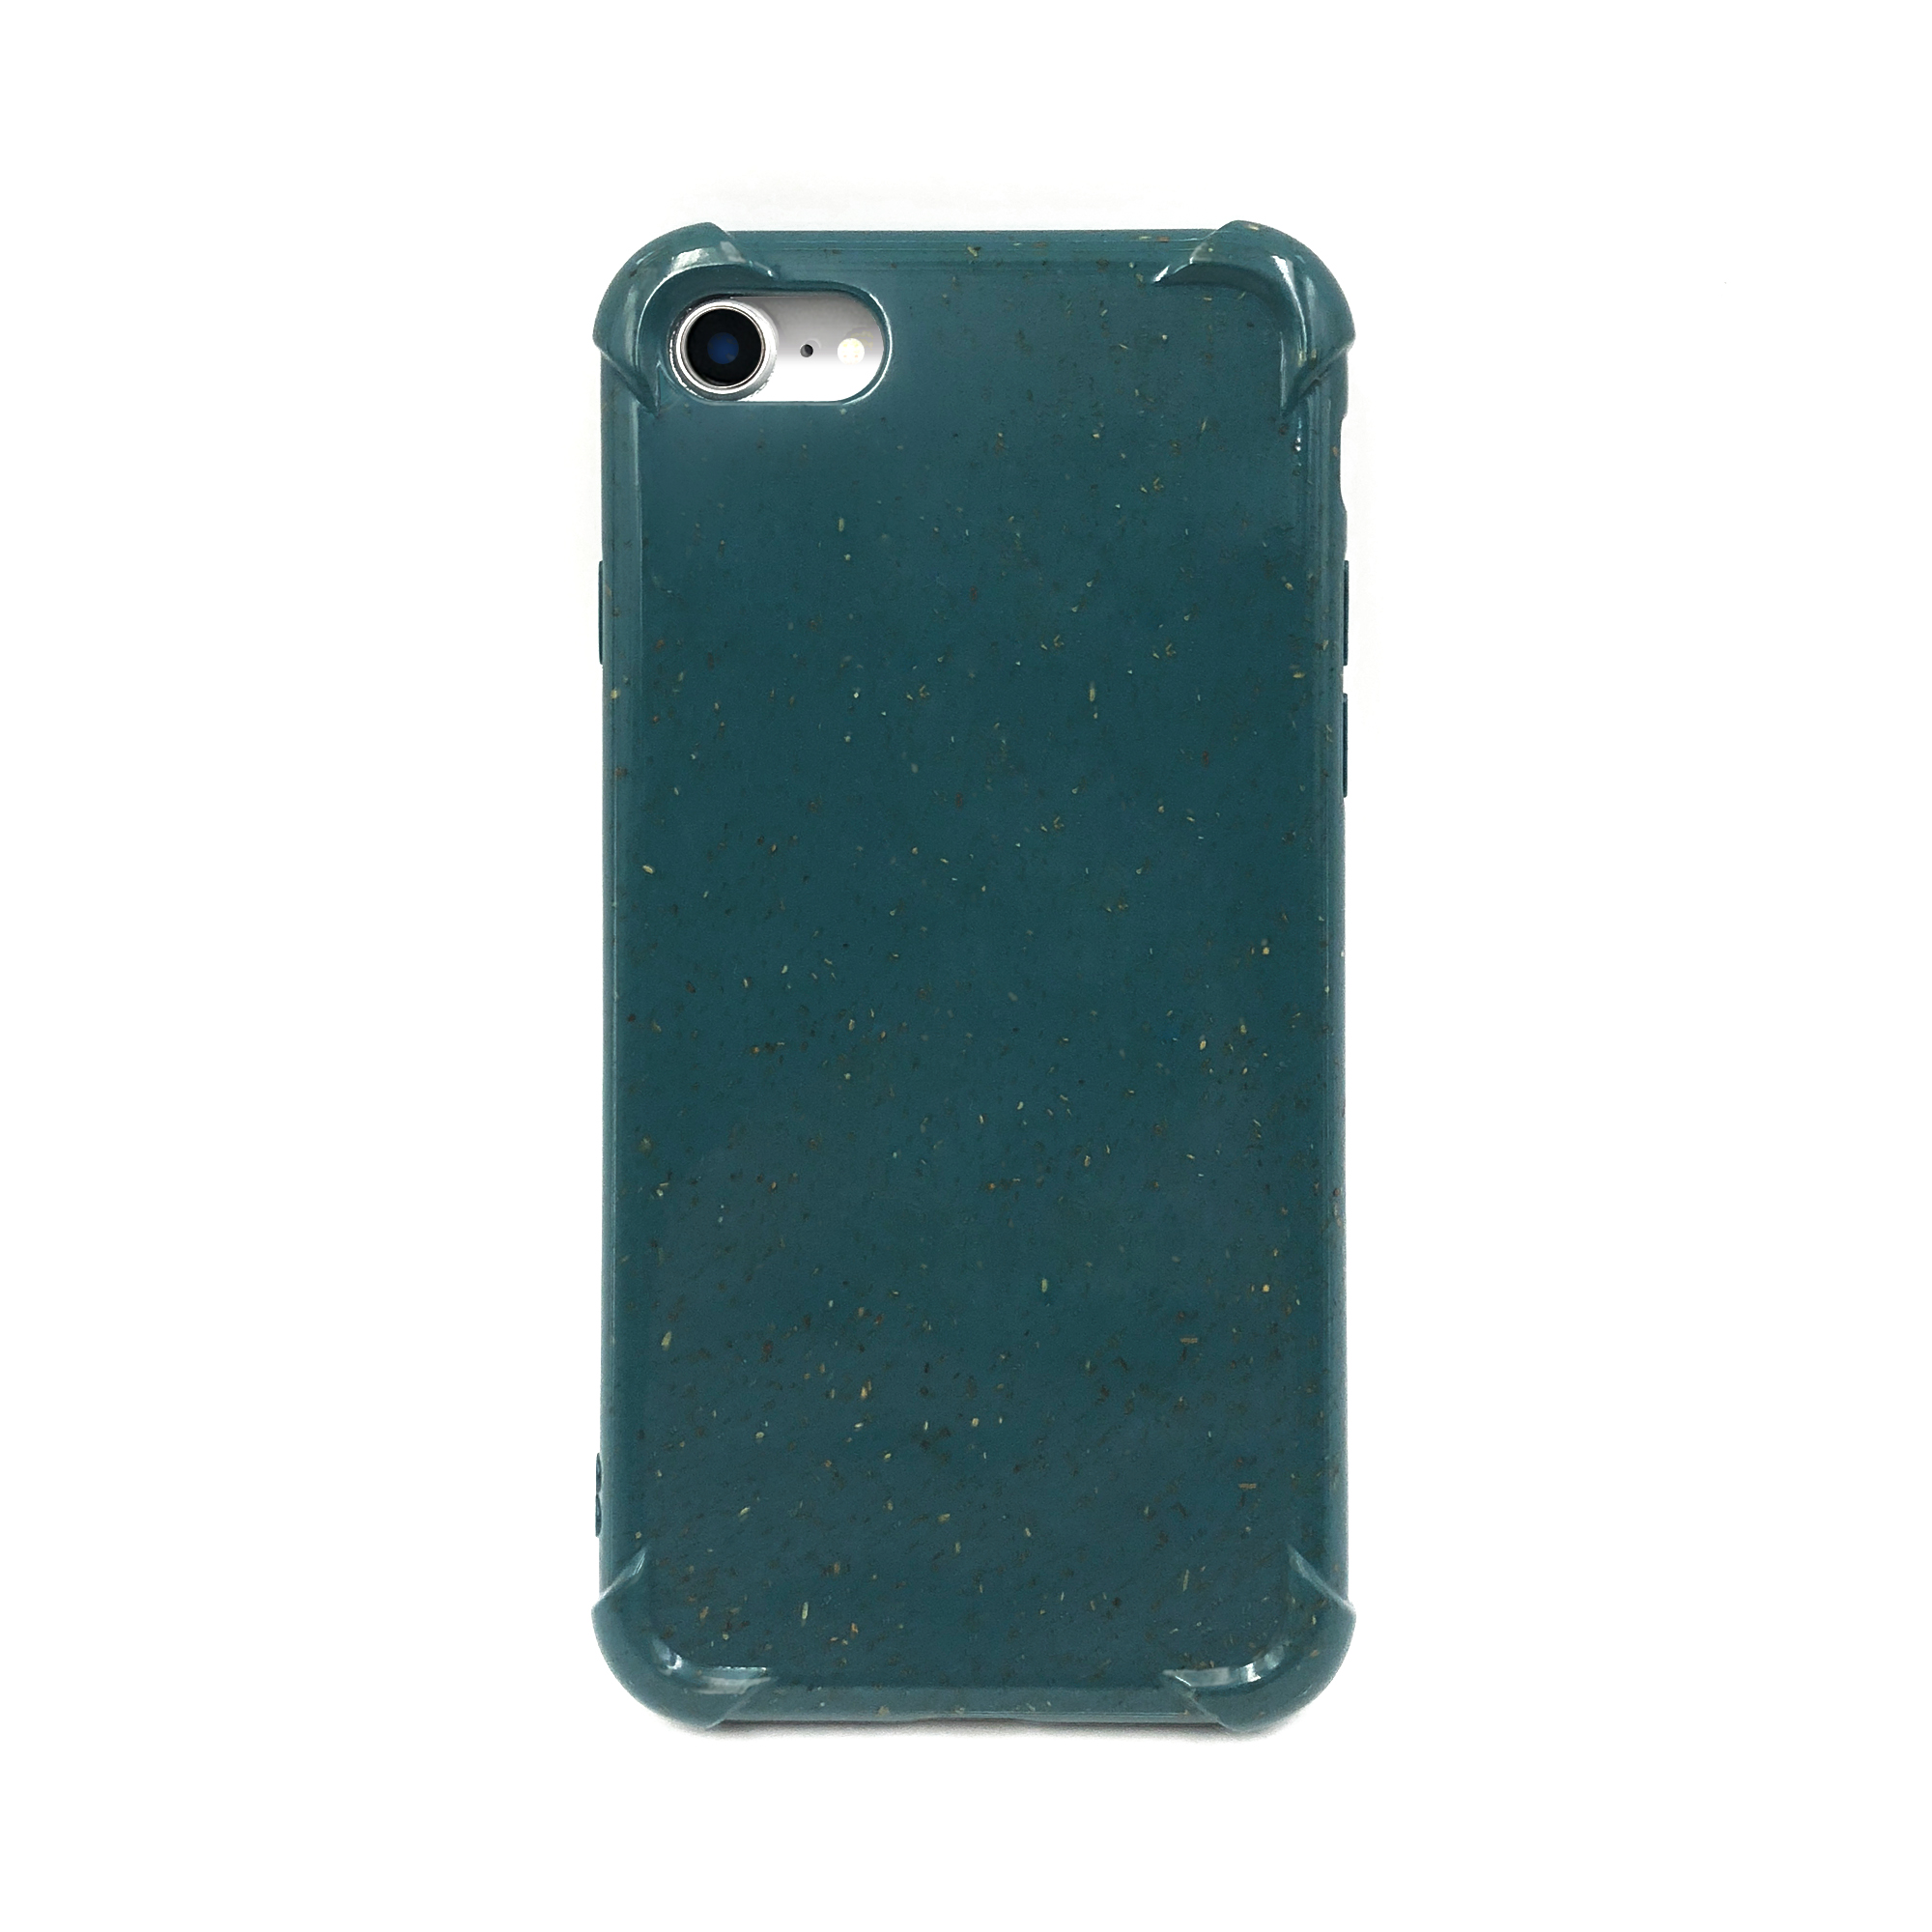 YOFEEL Eco Friendly <strong>Cell</strong> <strong>Phone</strong> Case Wheat Straw Biodegradable Recycled Mobile <strong>Phone</strong> Cover For Iphone 6/8/X